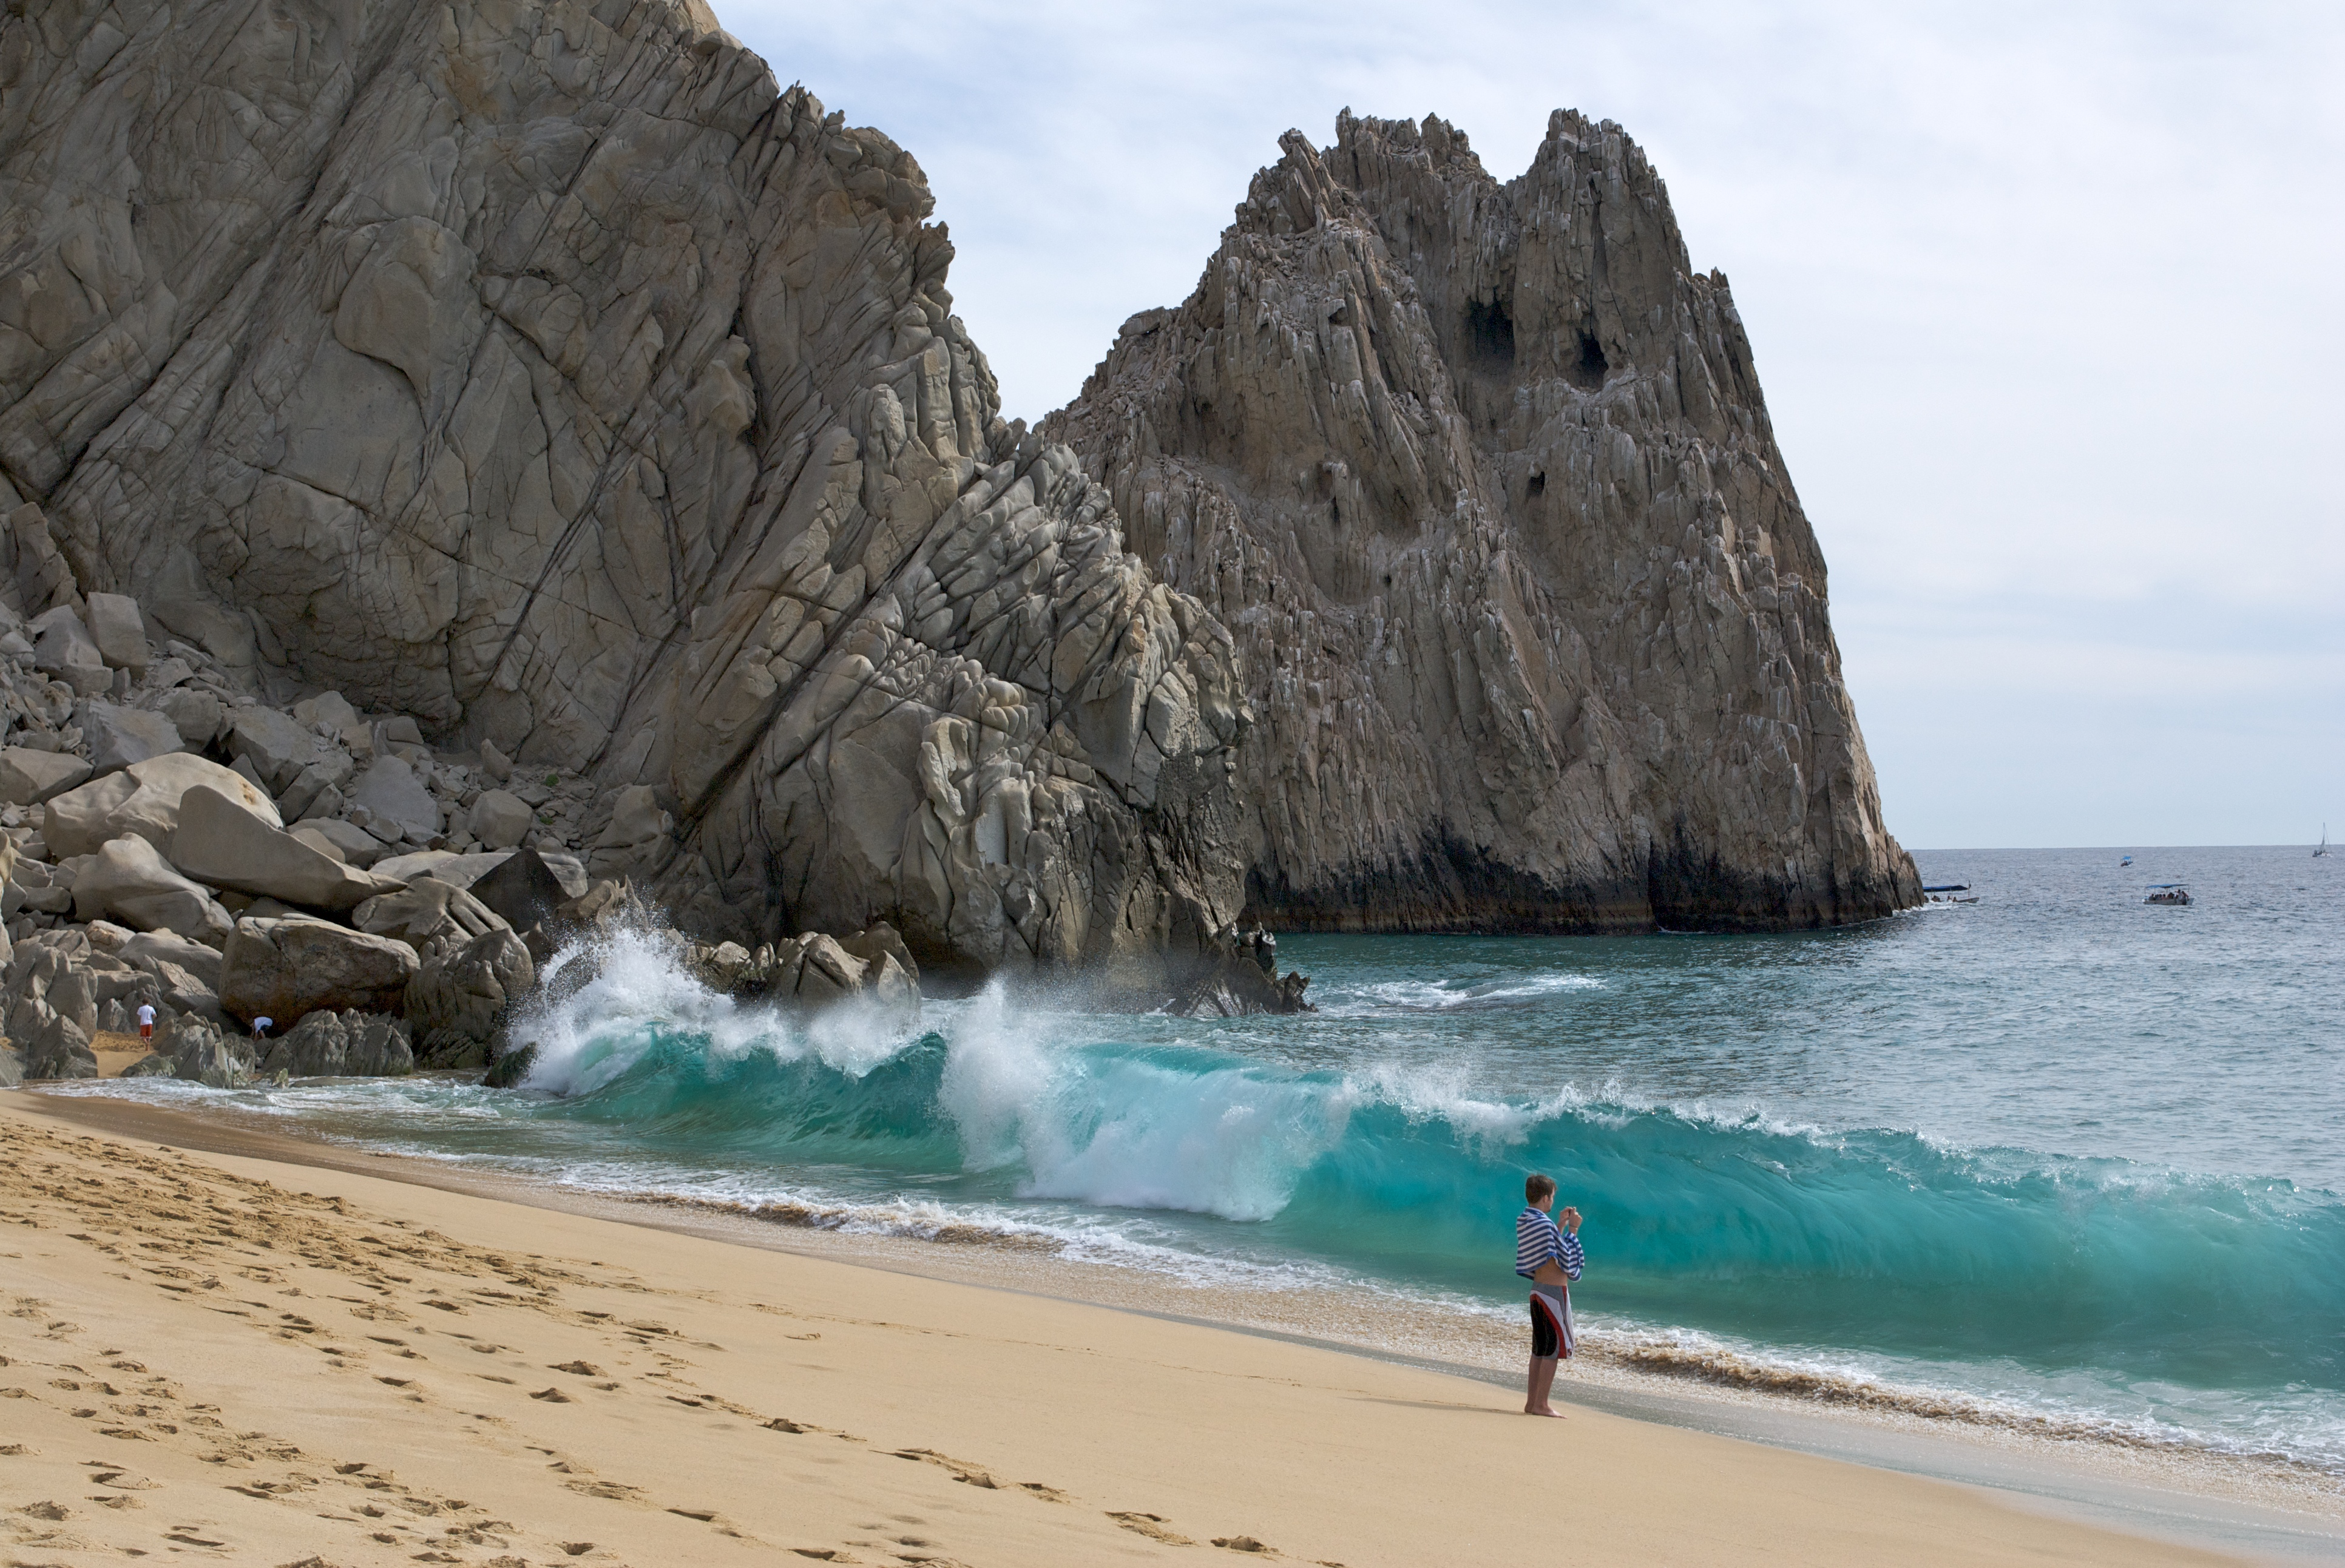 Travelling to Cabo San Lucas